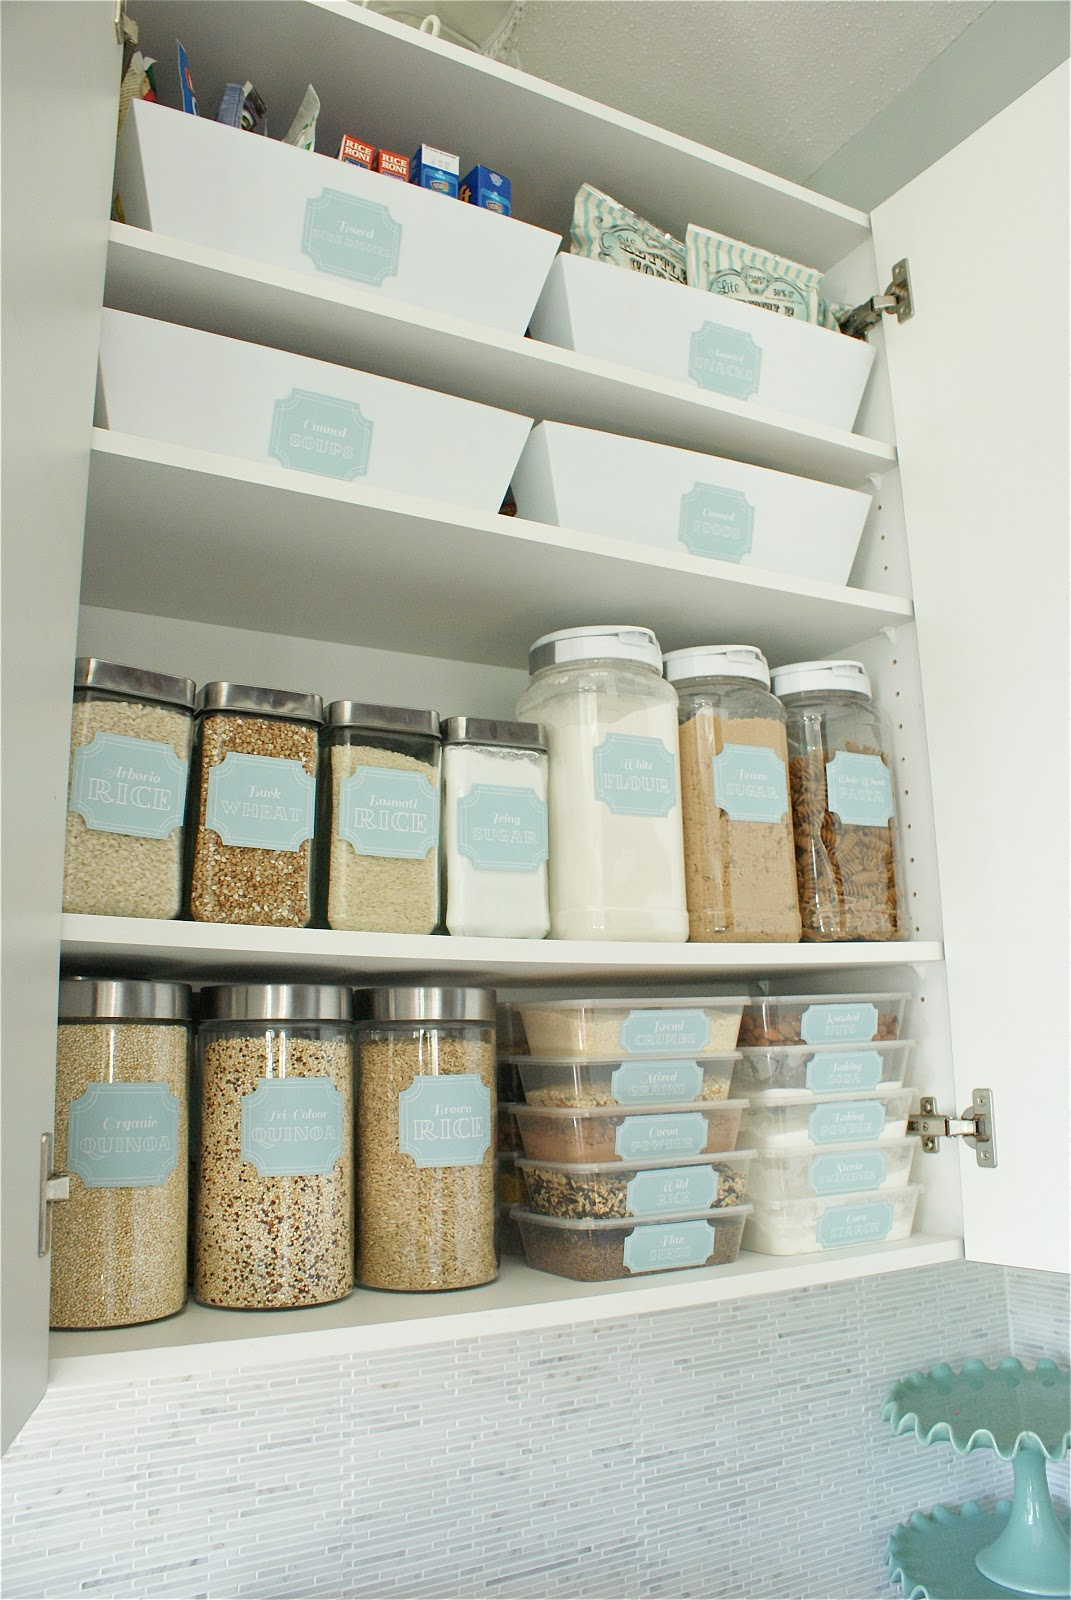 home kitchen pantry organization ideas mirabelle On kitchen organization